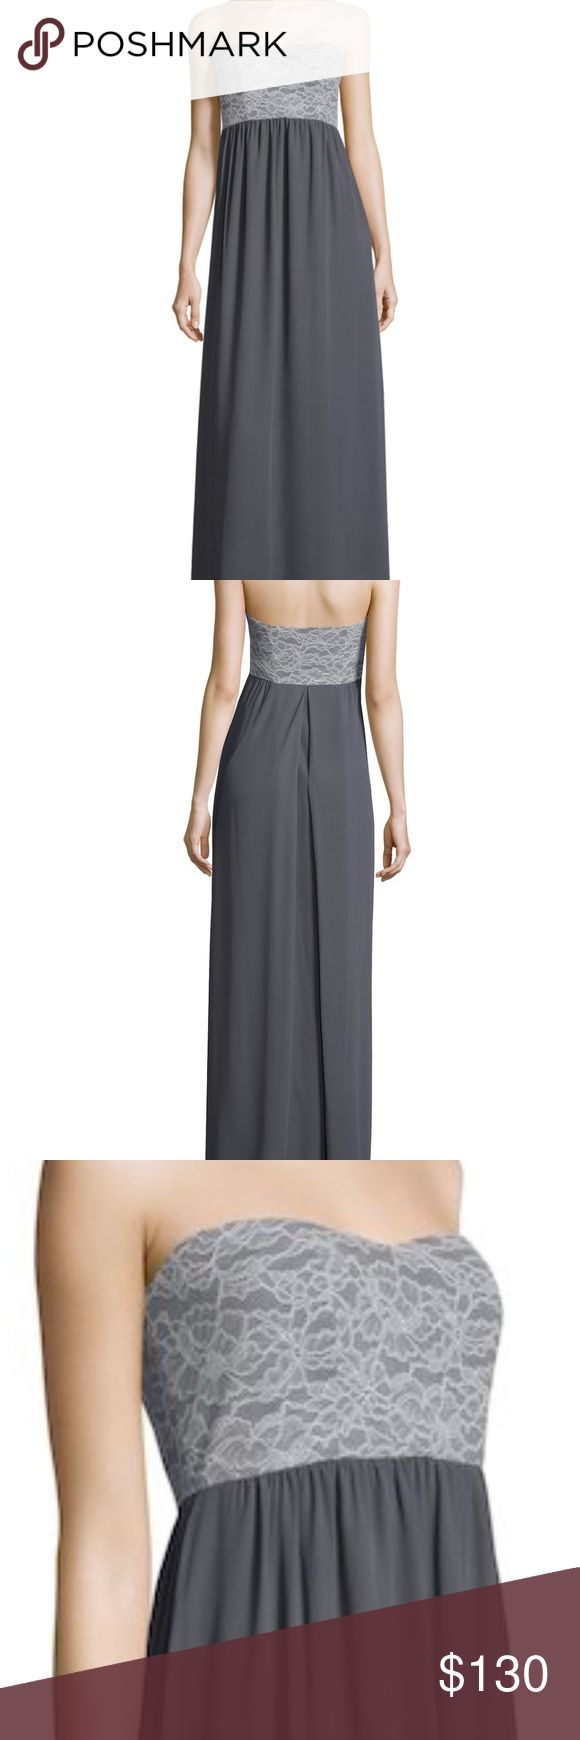 Paper Crown Bridesmaids Breanna Lace Top Maxi EUC (worn once for a wedding) gorgeous lace top maxi dress.  Stock photos pictured show gray colored dress, but **dress being sold is black with the same style and lace detailing as pictured**.  Lace top; Bandeau neck. Stunning fitted bodice & open back concept. Gathered at front skirt, with inverted pleat at back skirt. Tonal topstitching and panel seaming. Fully lined and gorgeous movement. Size XL (fits a women's size 12/14).  From Lauren…